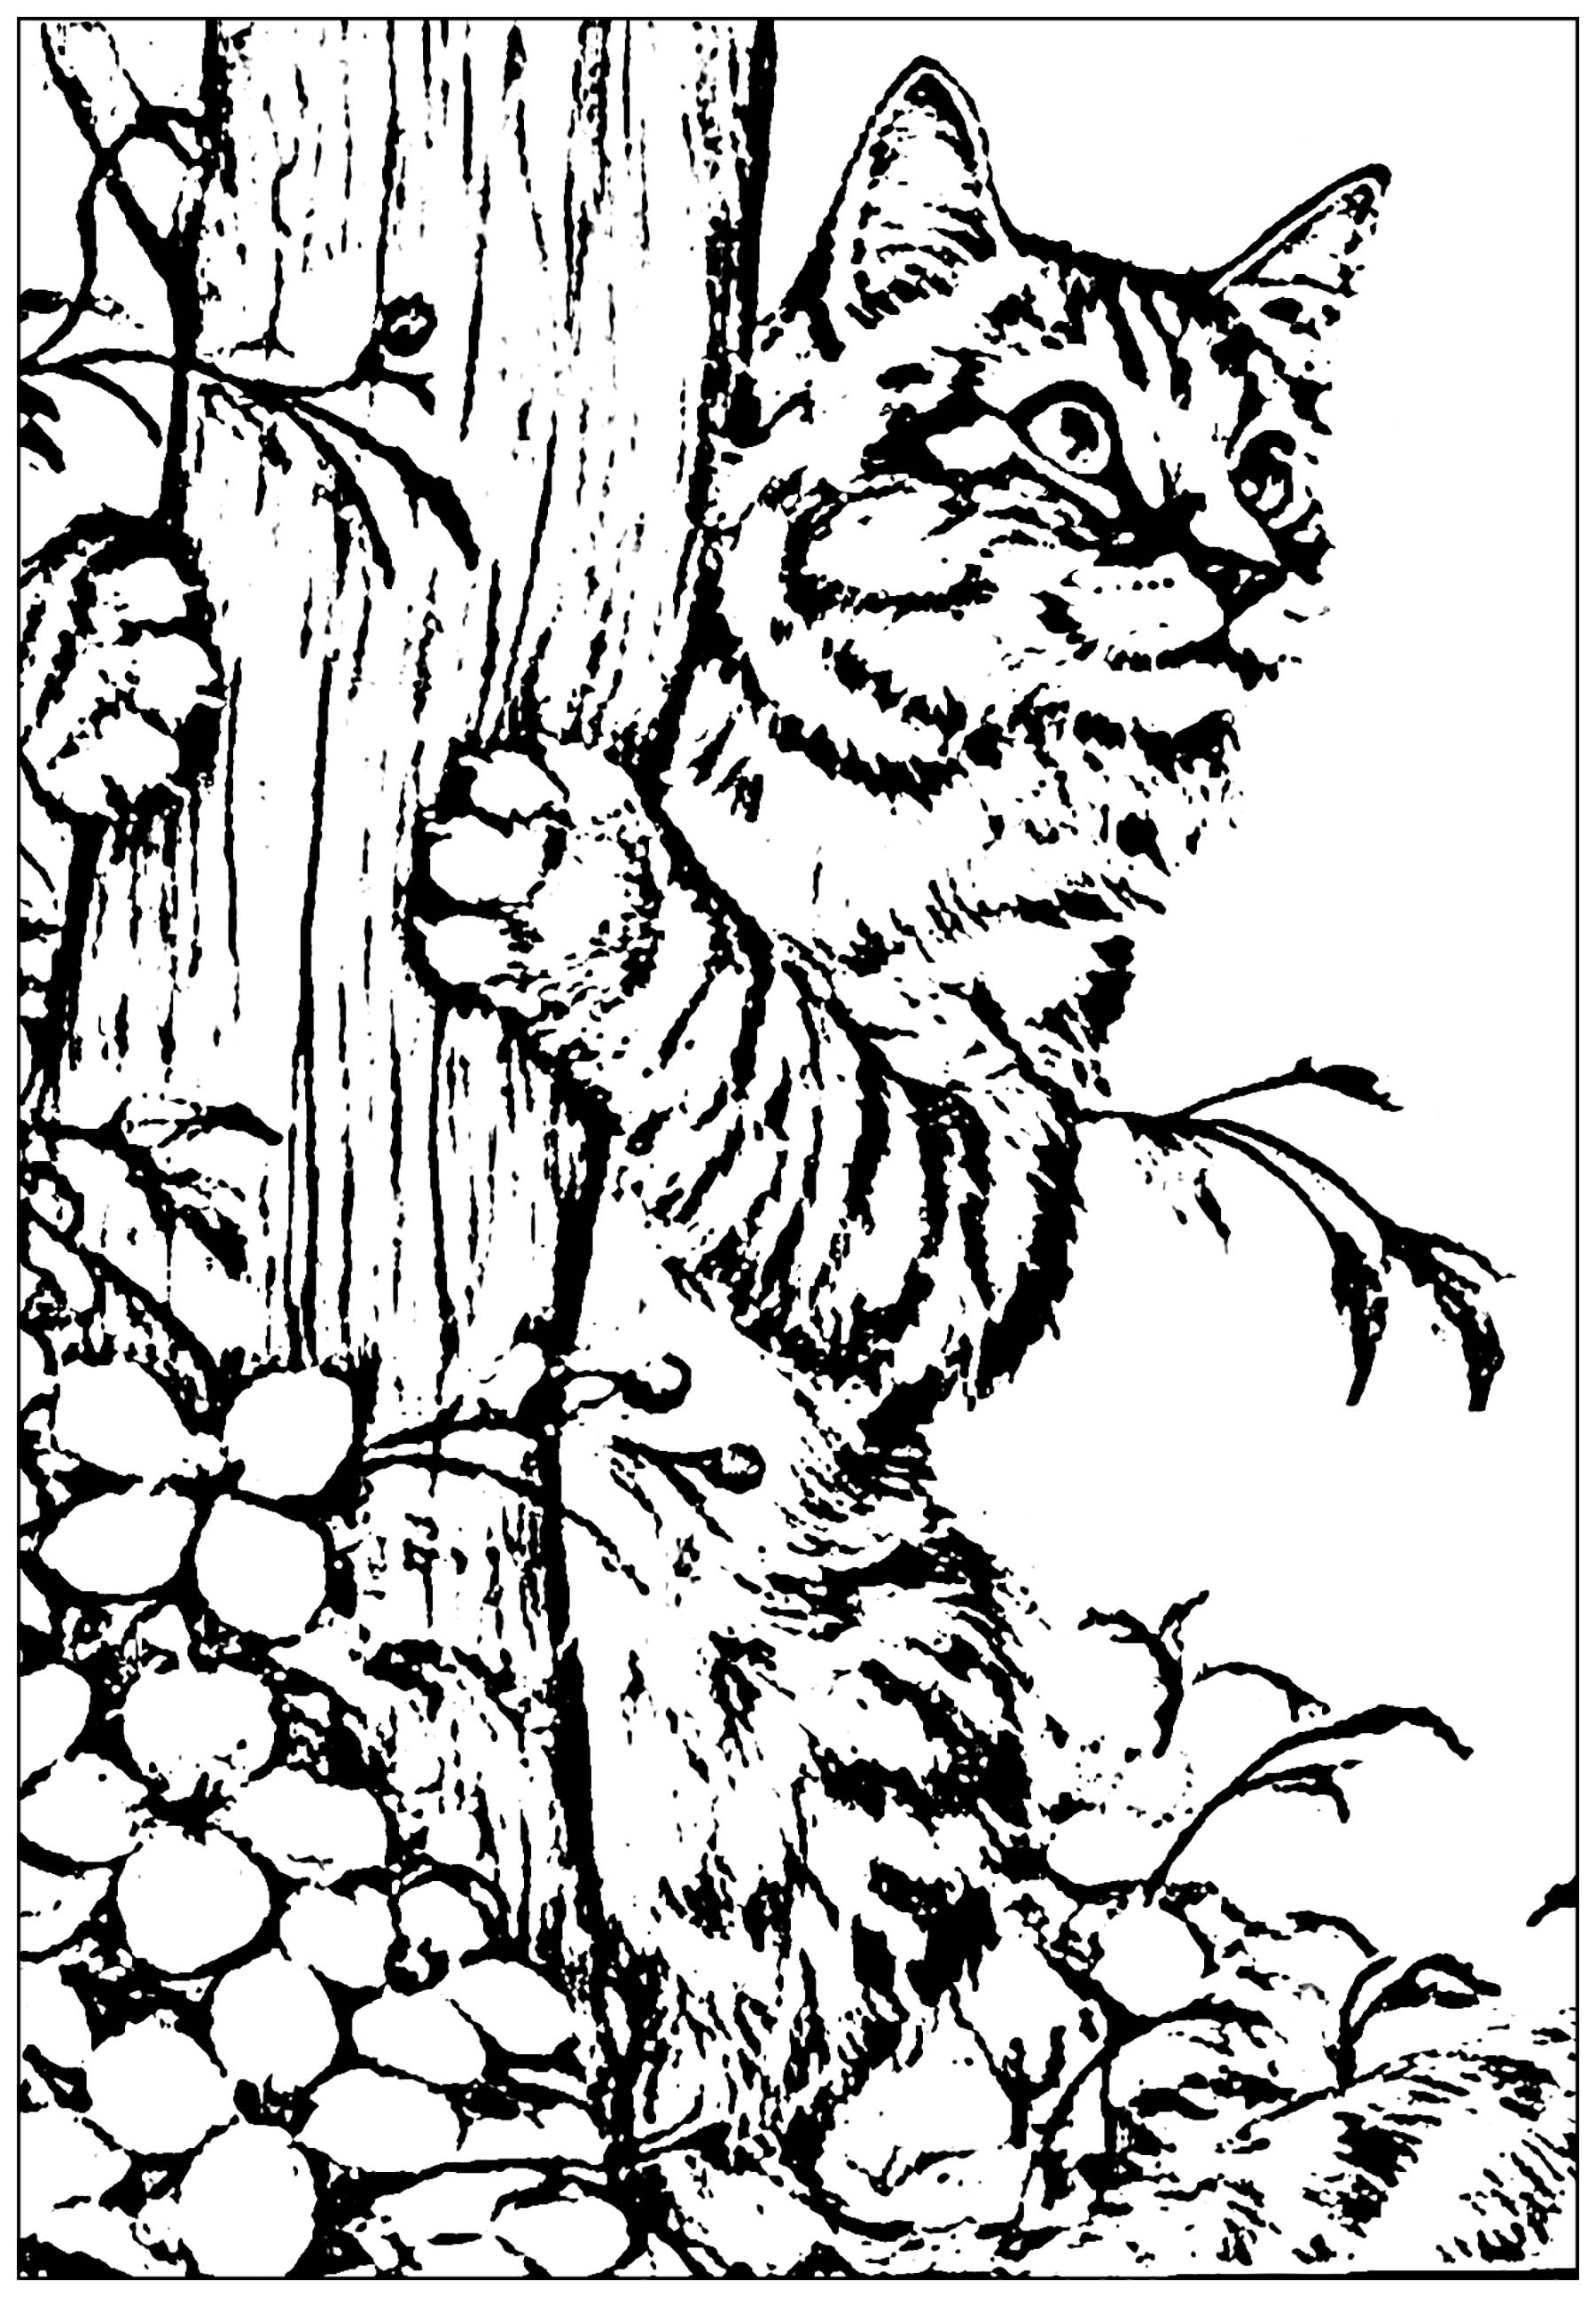 Funny Cat coloring page for kids, created from a photo